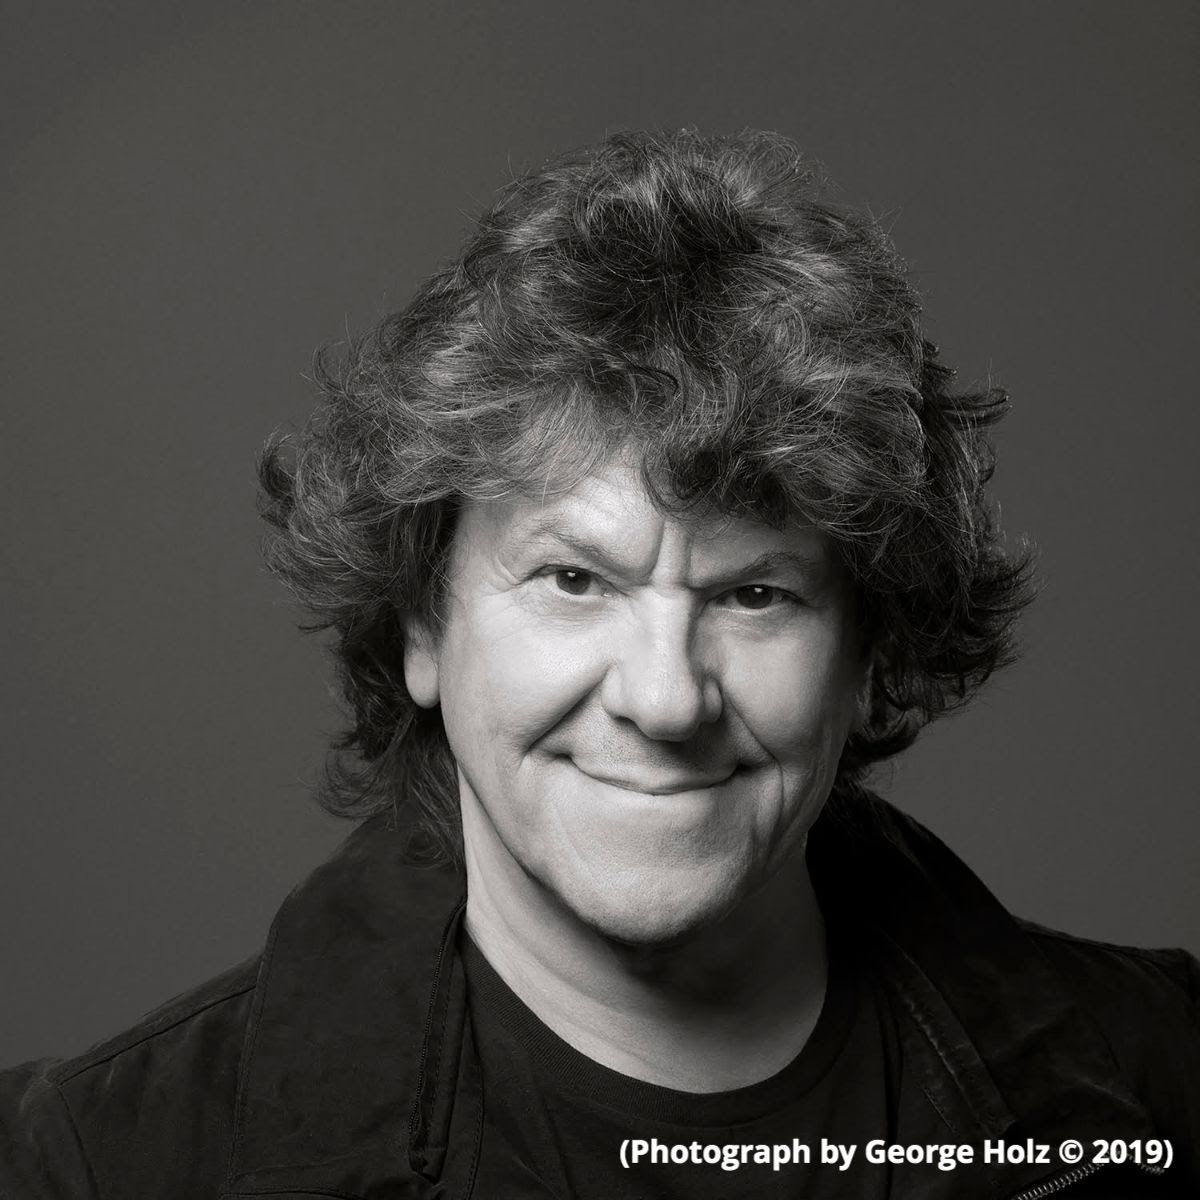 Michael Lang - Michael Lang is best known for co-founding the original Woodstock 1969, and has since gone on to act as consultant to the Rolling Stones, established Just Sunshine Records and the Michael Lang Organization, and produced and managed many music stars and festivals.FOV has selected Lang because of his prolific history in the music industry as well as his dedication to the Town of Woodstock and the greater Ulster County community. 2019 is not just an important year for us, but also an important year for music. We could not miss an opportunity to celebrate the 50th anniversary of Woodstock, and in turn our friend, mentor, and Hudson Valley resident Michael Lang.Although Mr. Lang served as the concert promoter and co-founder of Woodstock 1969, for us, his impact reaches far beyond a single moment in time. Woodstock heralded the concept of the Hudson Valley Summer Music Festival, igniting the cultural and economic vitality of our region, and altering its history for the better. Today, hundreds of summer festivals showcasing classical music, jazz, rock, folk music, world music and more pepper Upstate New York. People from all over the world flock to the Hudson Valley every summer, and we are proud to welcome them with a legacy of peace, love, and music.